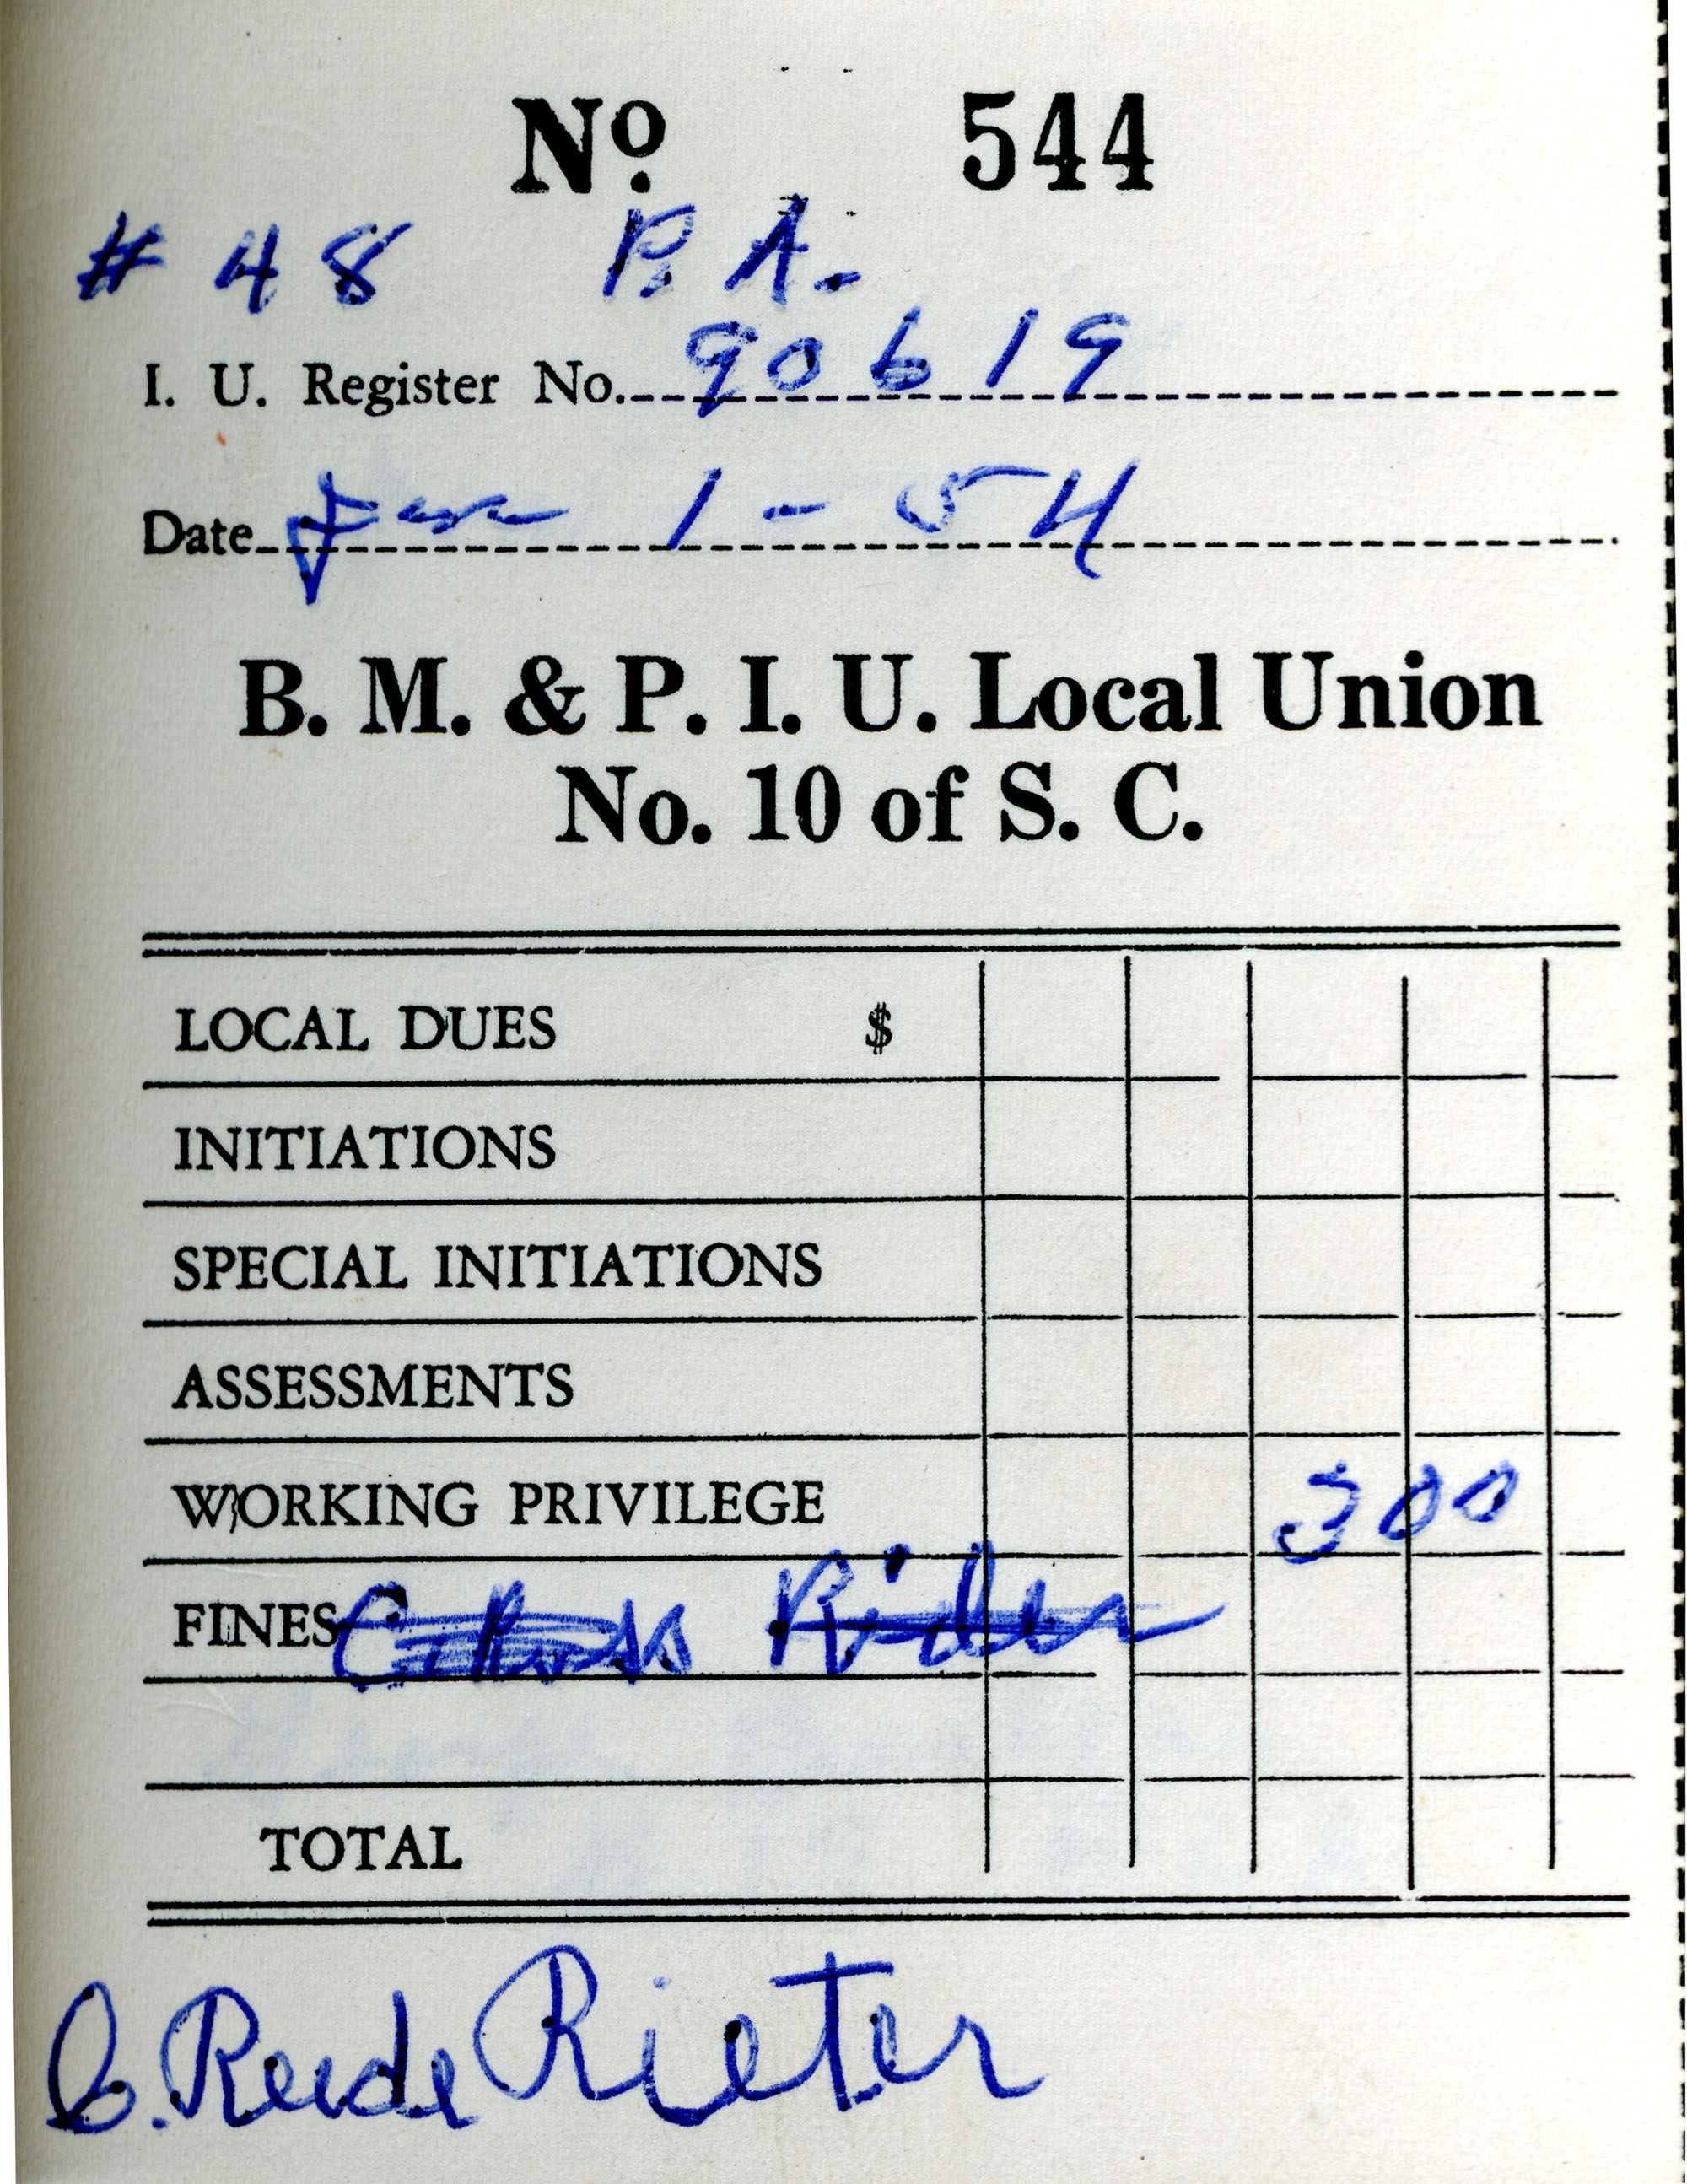 Receipt Book 2, Page 39